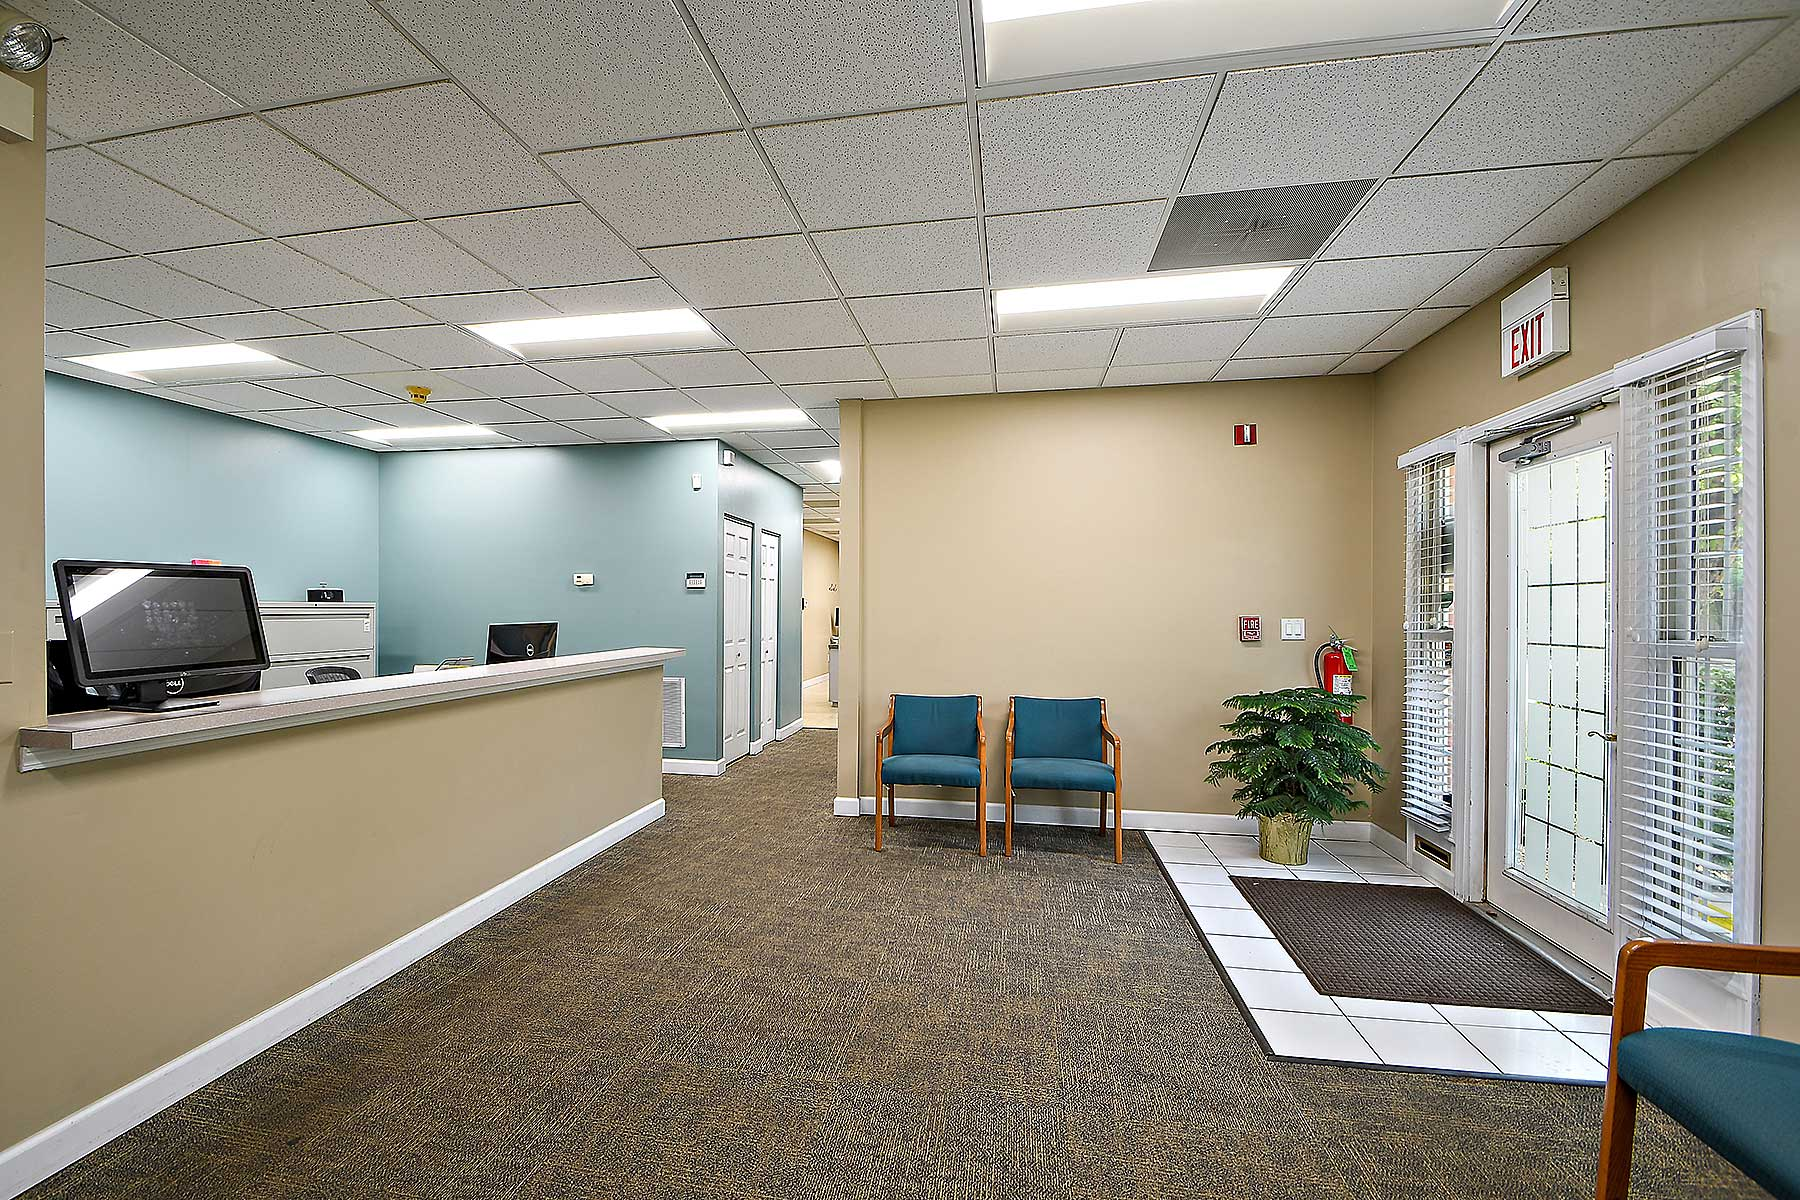 Orthodontic patient waiting room at Sonneveld Orthodontics. Orthodontic reception desk is located on the left hand side of the image, teal chairs are on each side of the walls.